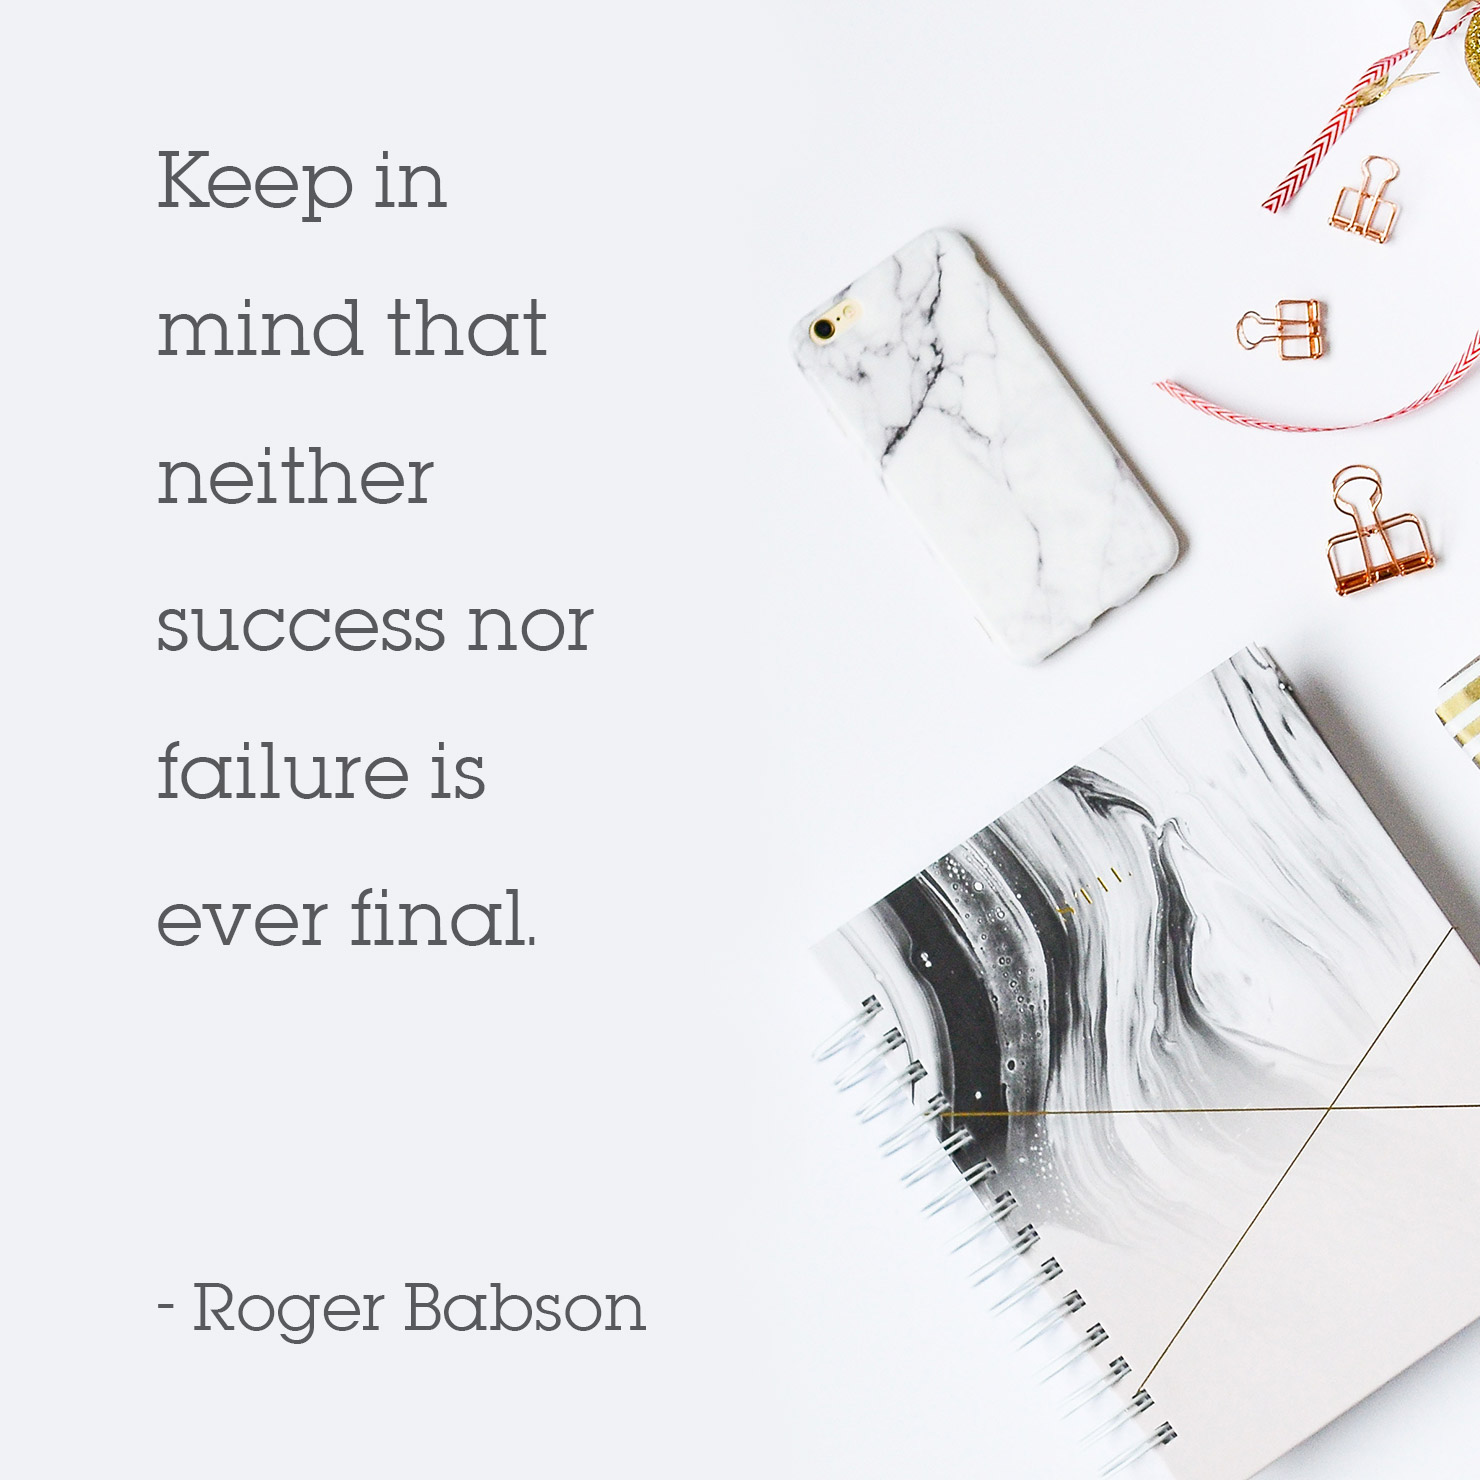 wisdom graduation quote: keep in mind that neither success nor failure is ever final - Roger Babson